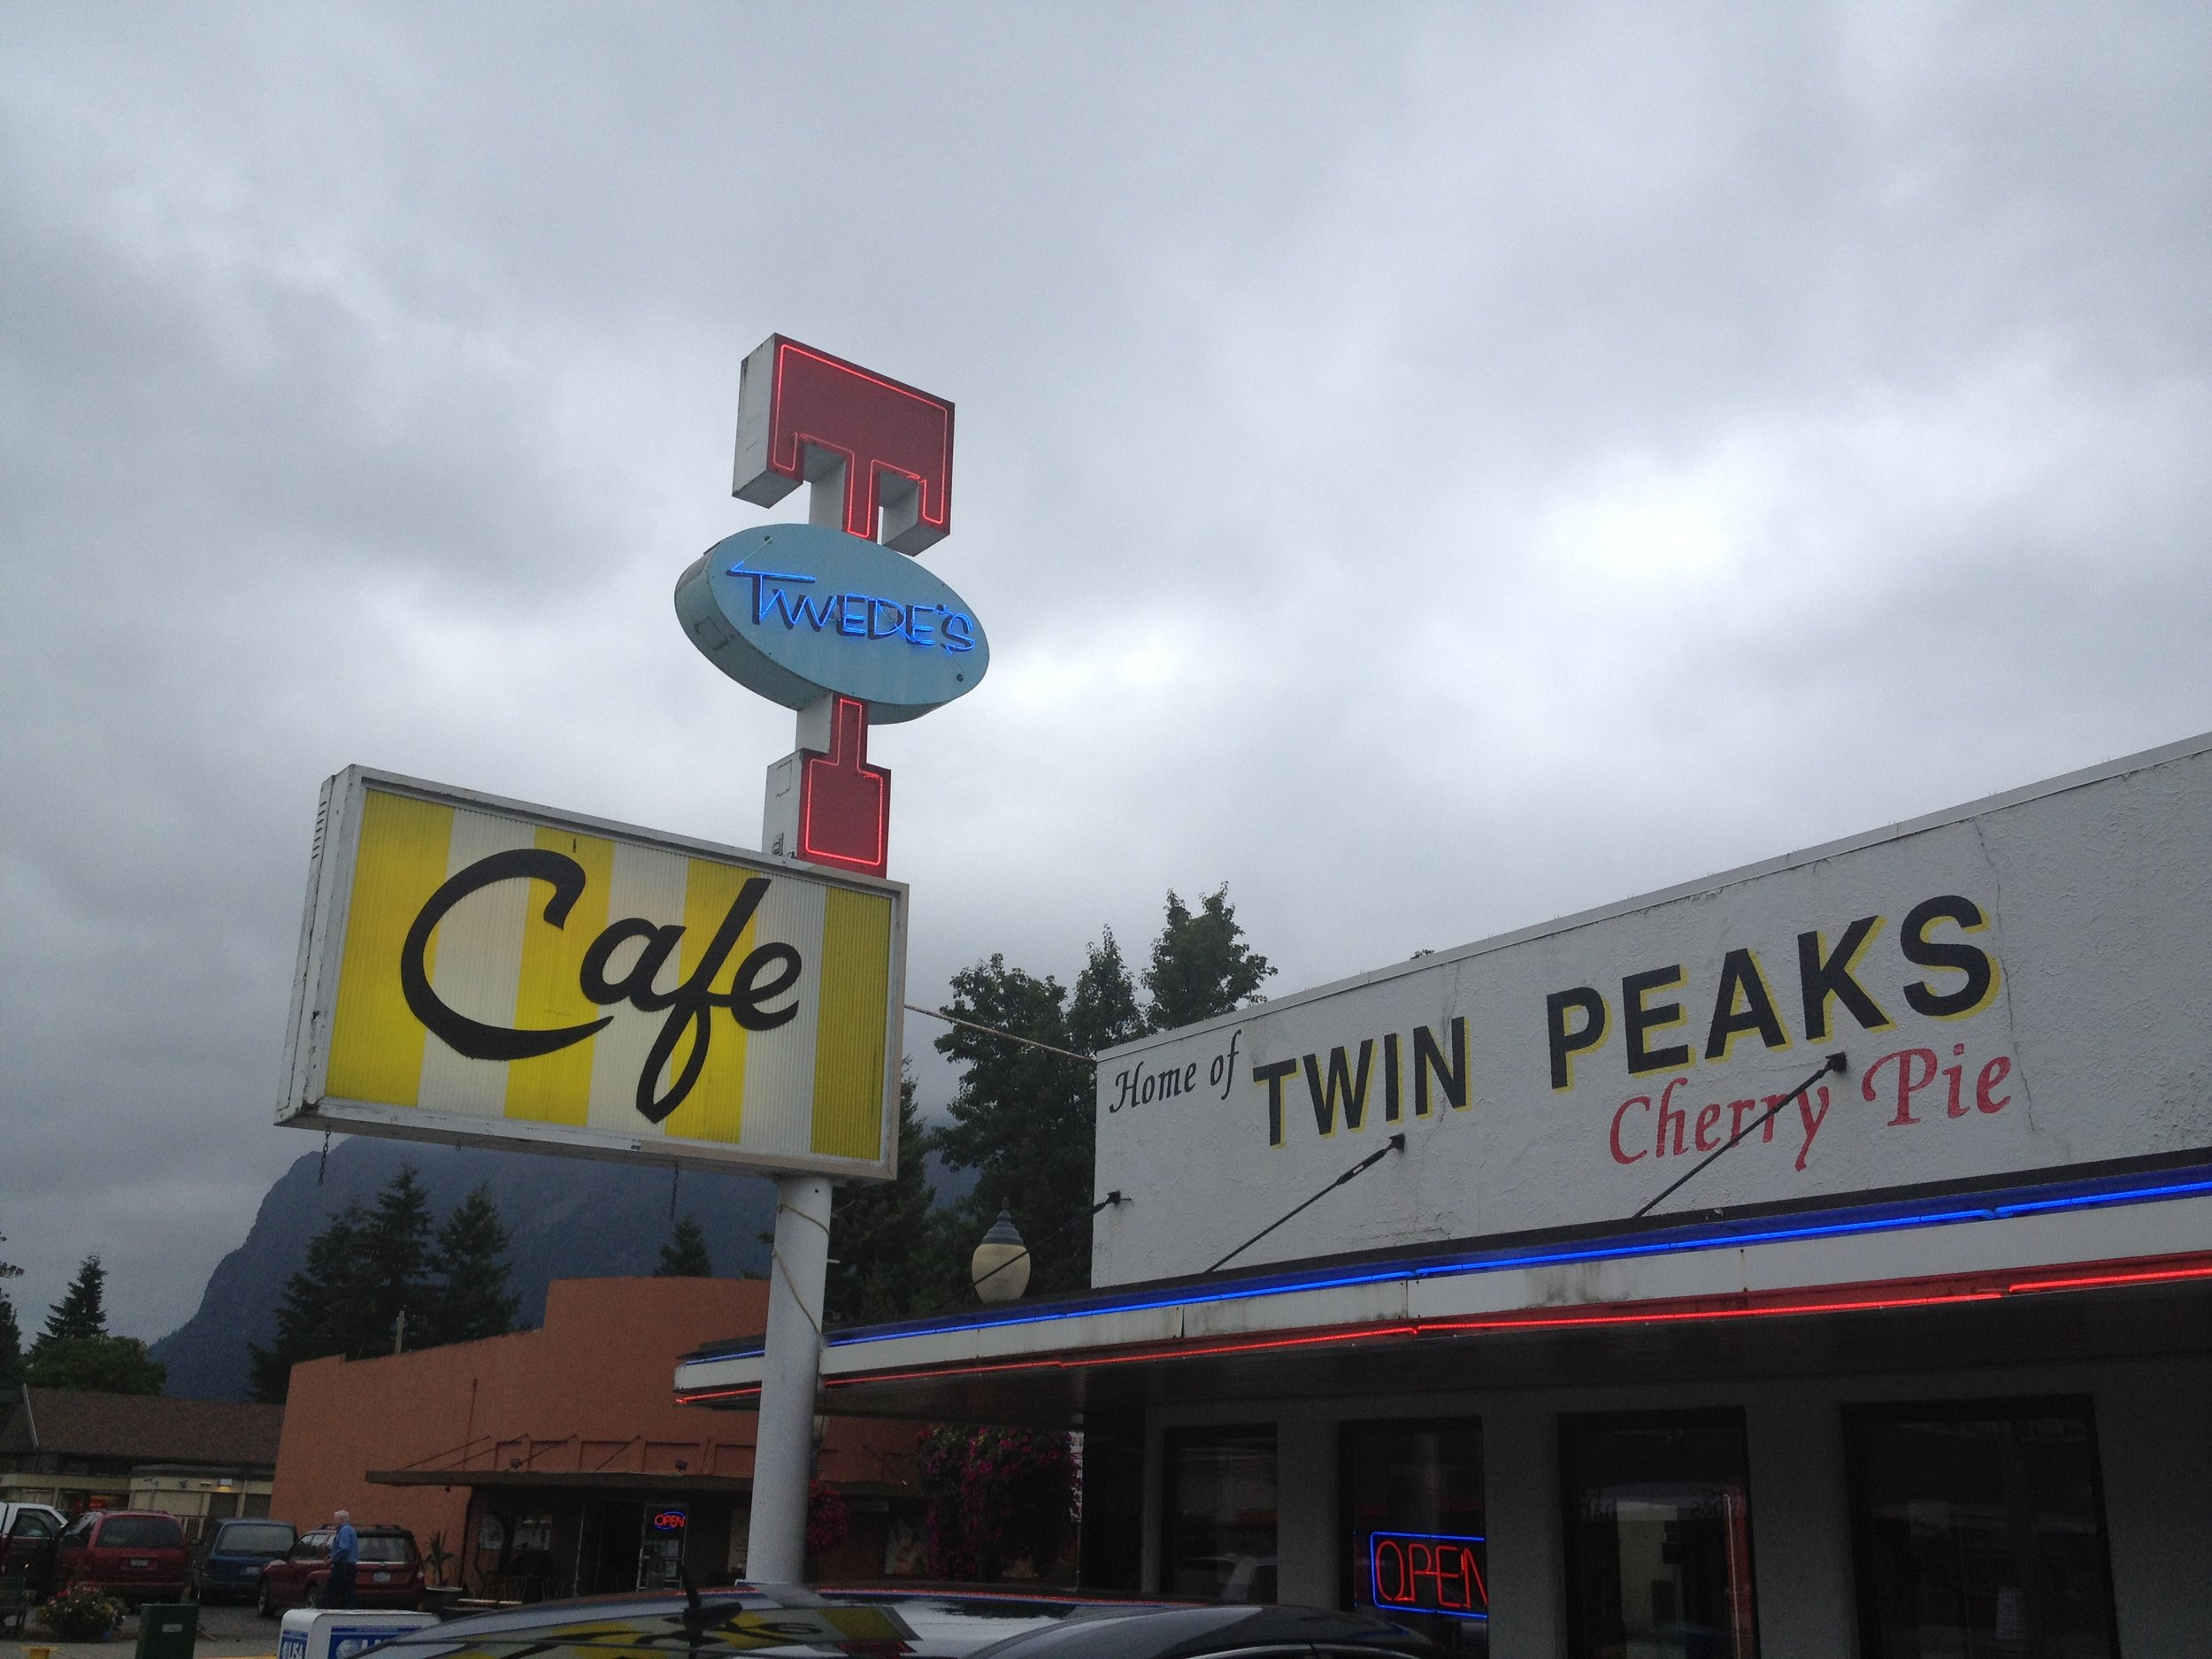 The Double R Diner (AKA Twede's Cafe), North Bend, WA